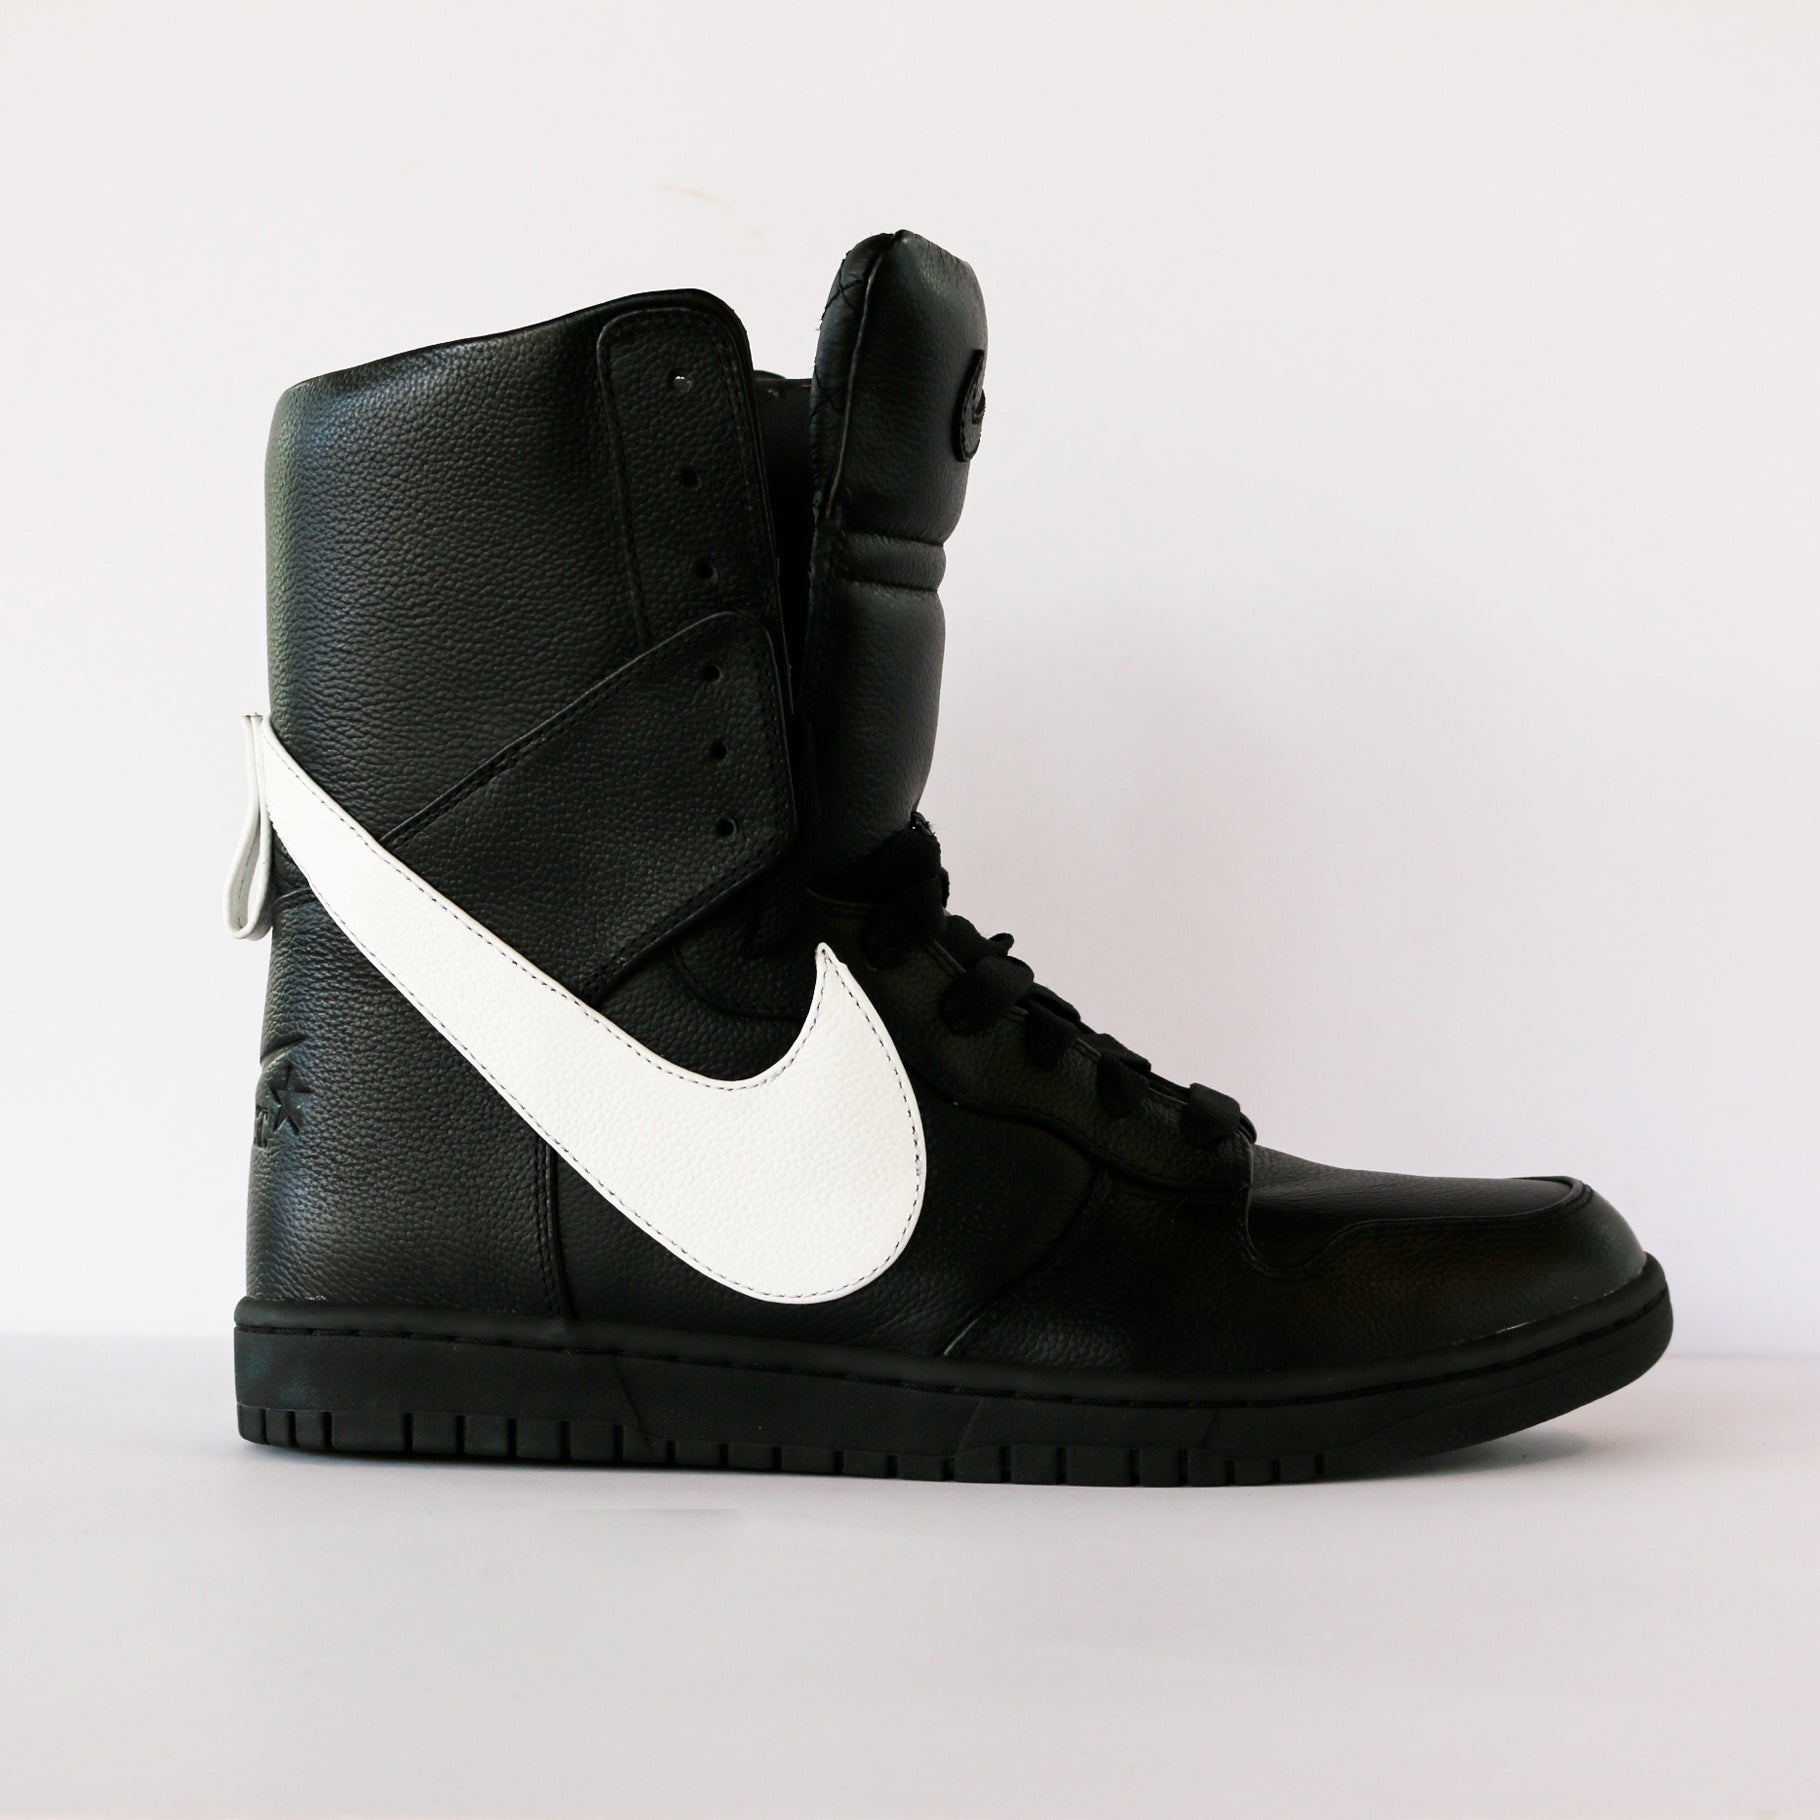 online store 26124 7bacc Riccardo Tisci x Nike Dunk High Lux – Butter